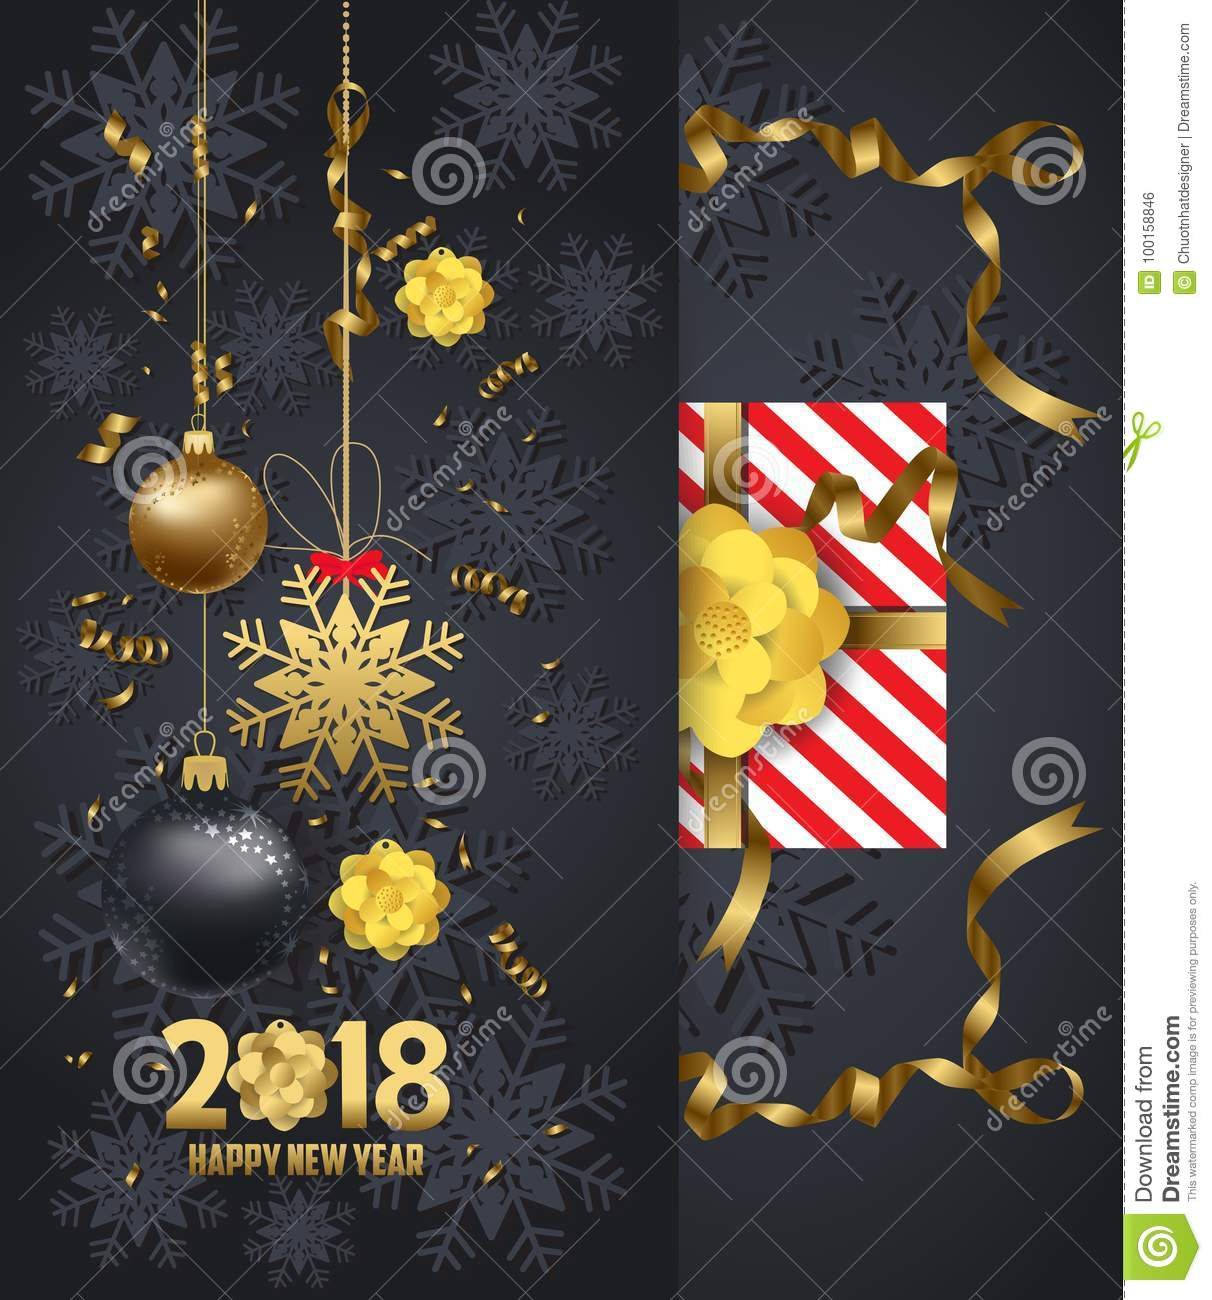 holiday greeting and happy new year 2018 card with gold balls